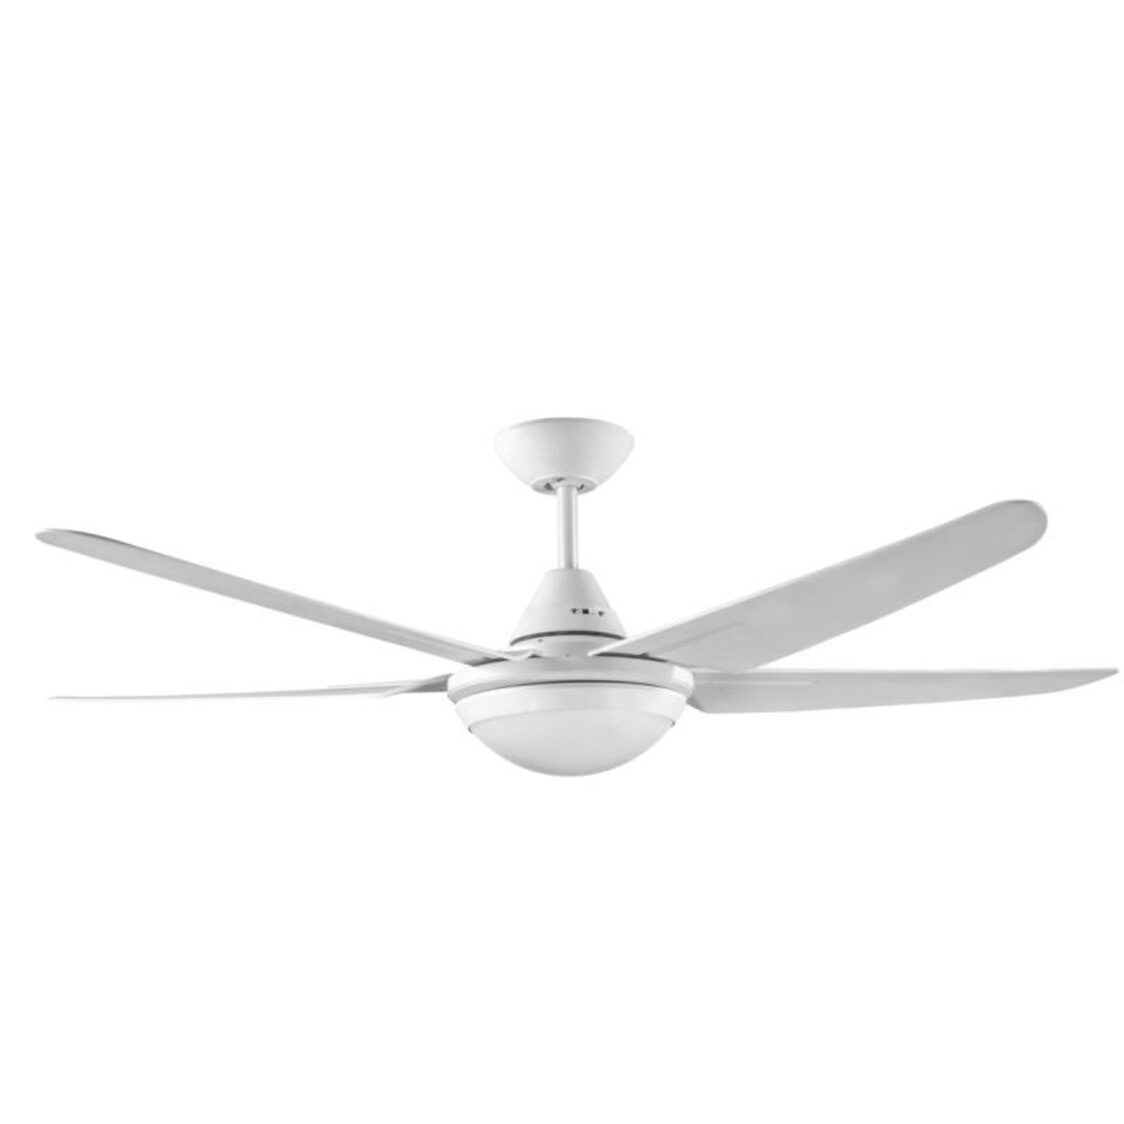 Brisbane Ceiling Fan With Remote And Tri-Color Led Light Kit White 52